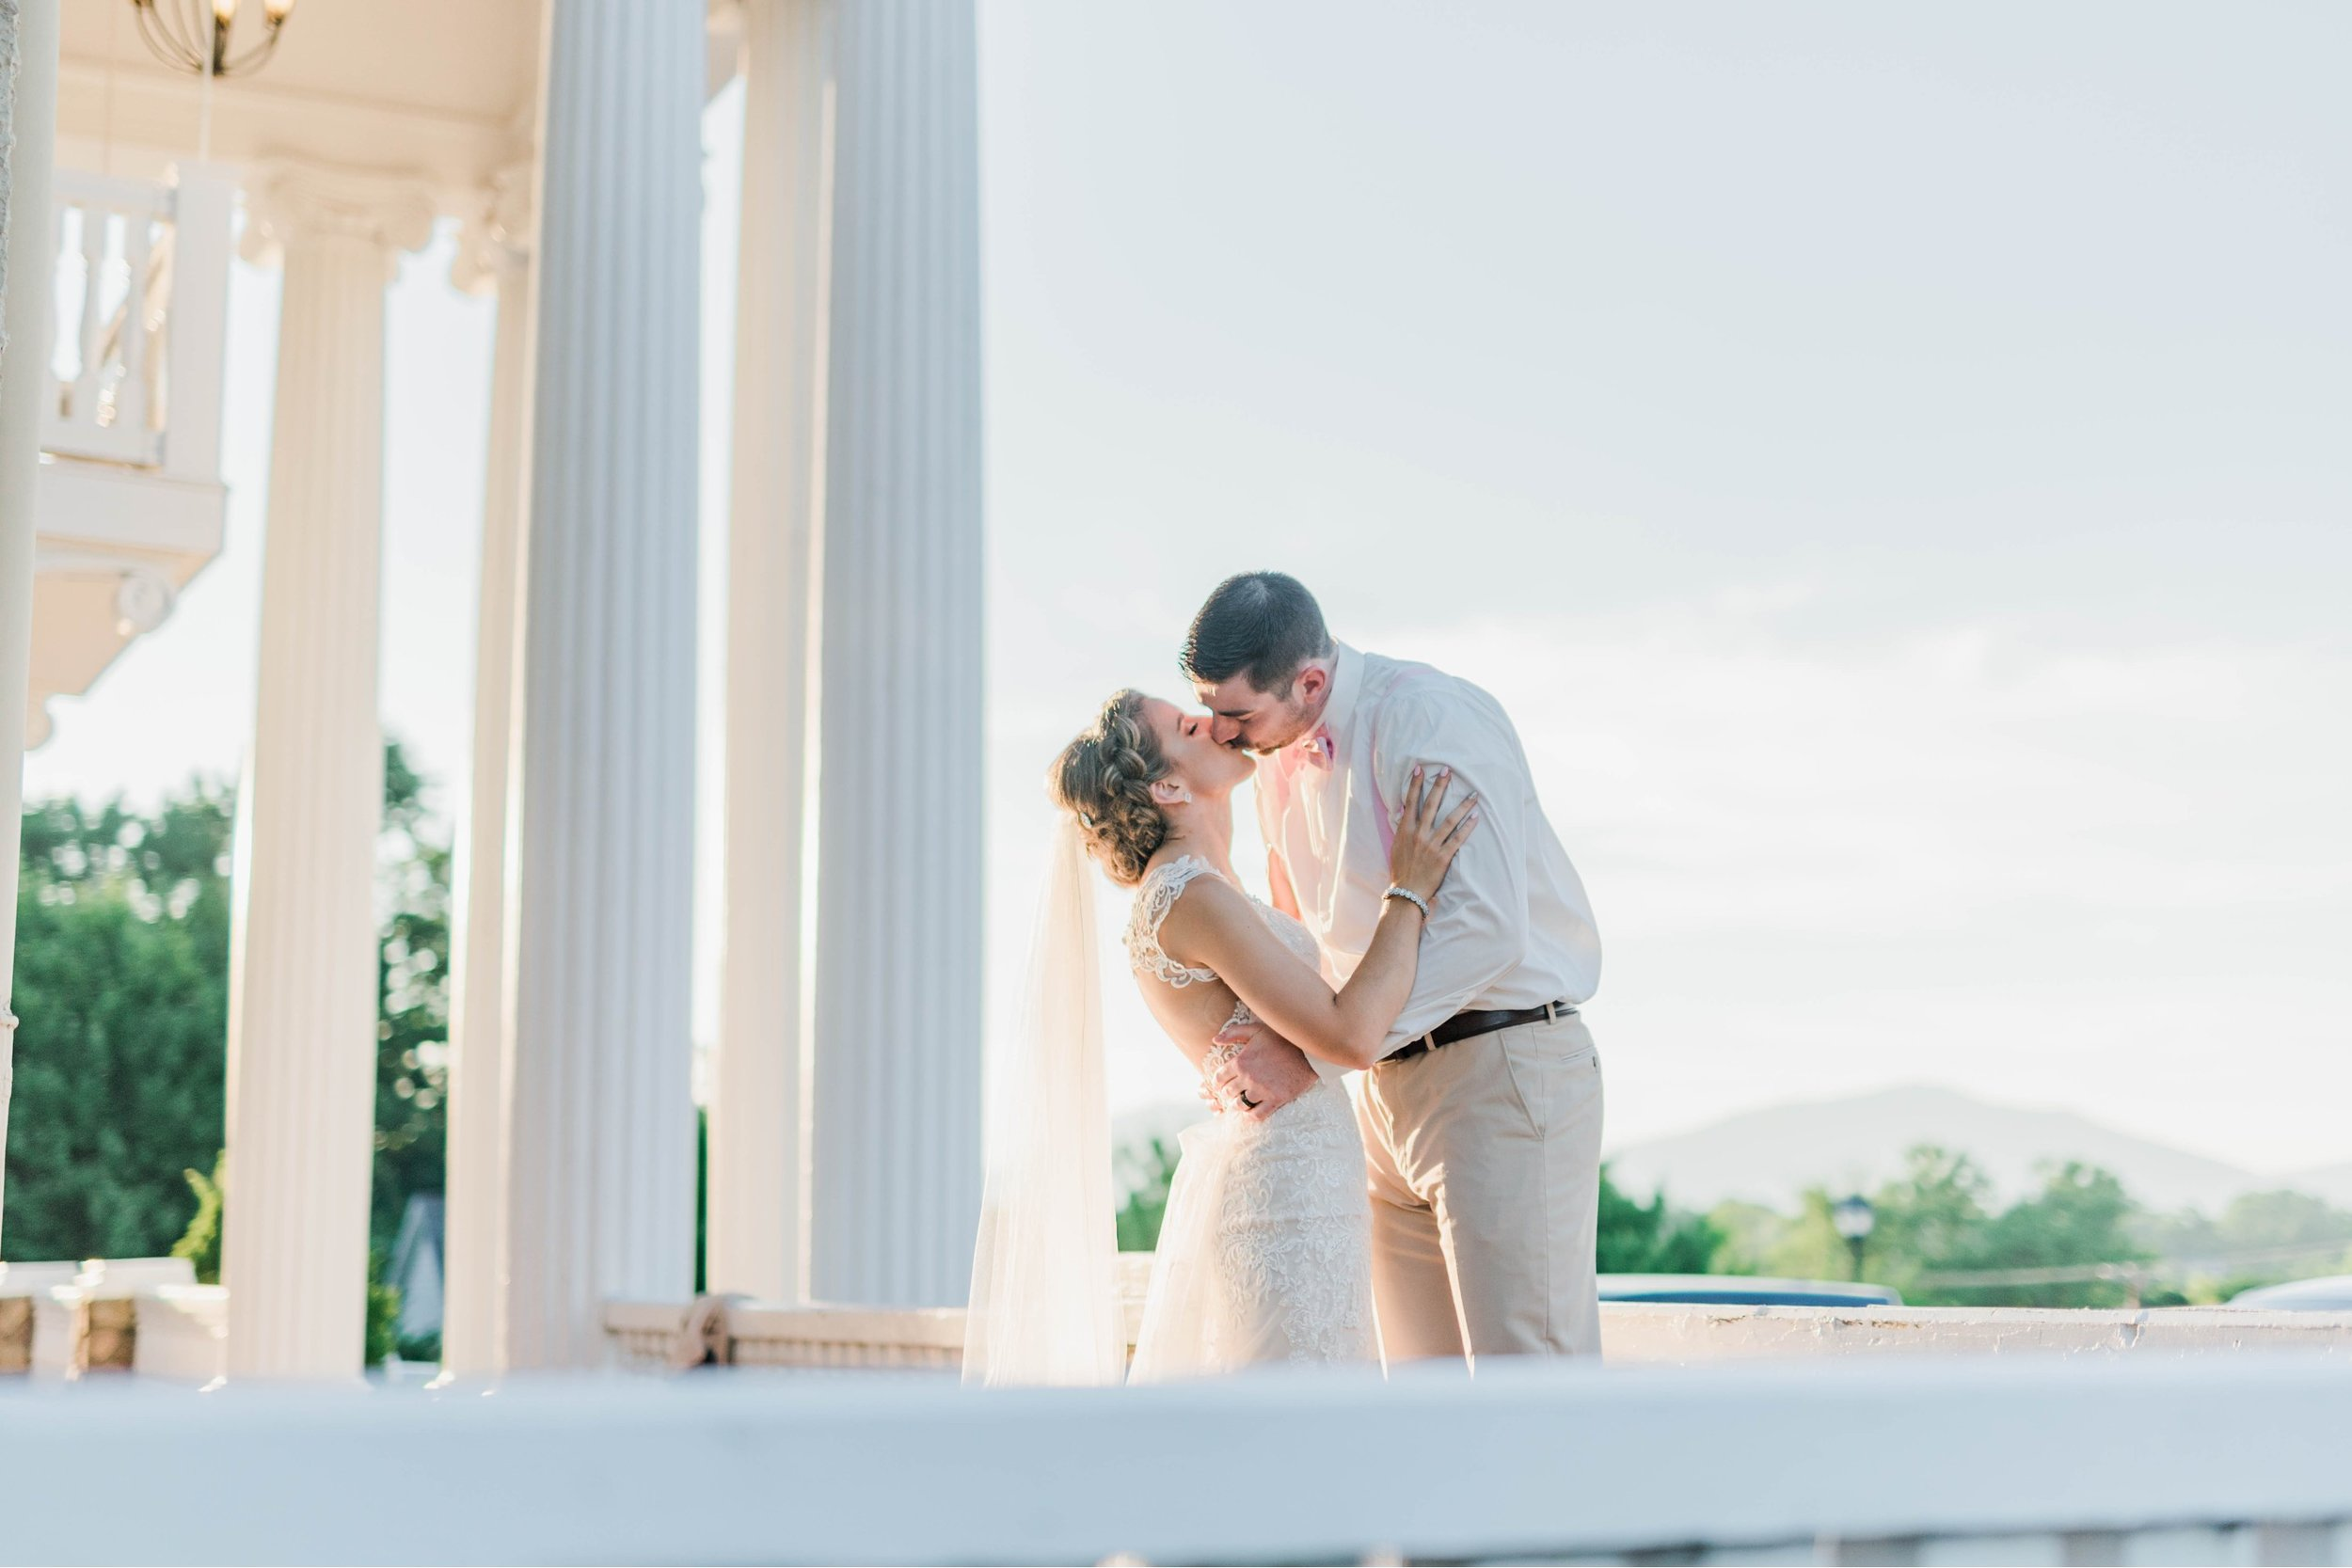 BedfordColumns_EntwinedEvents_Lynchburgwedding_VIrginiaweddingphotographer_ALlisonNIck 25.jpg